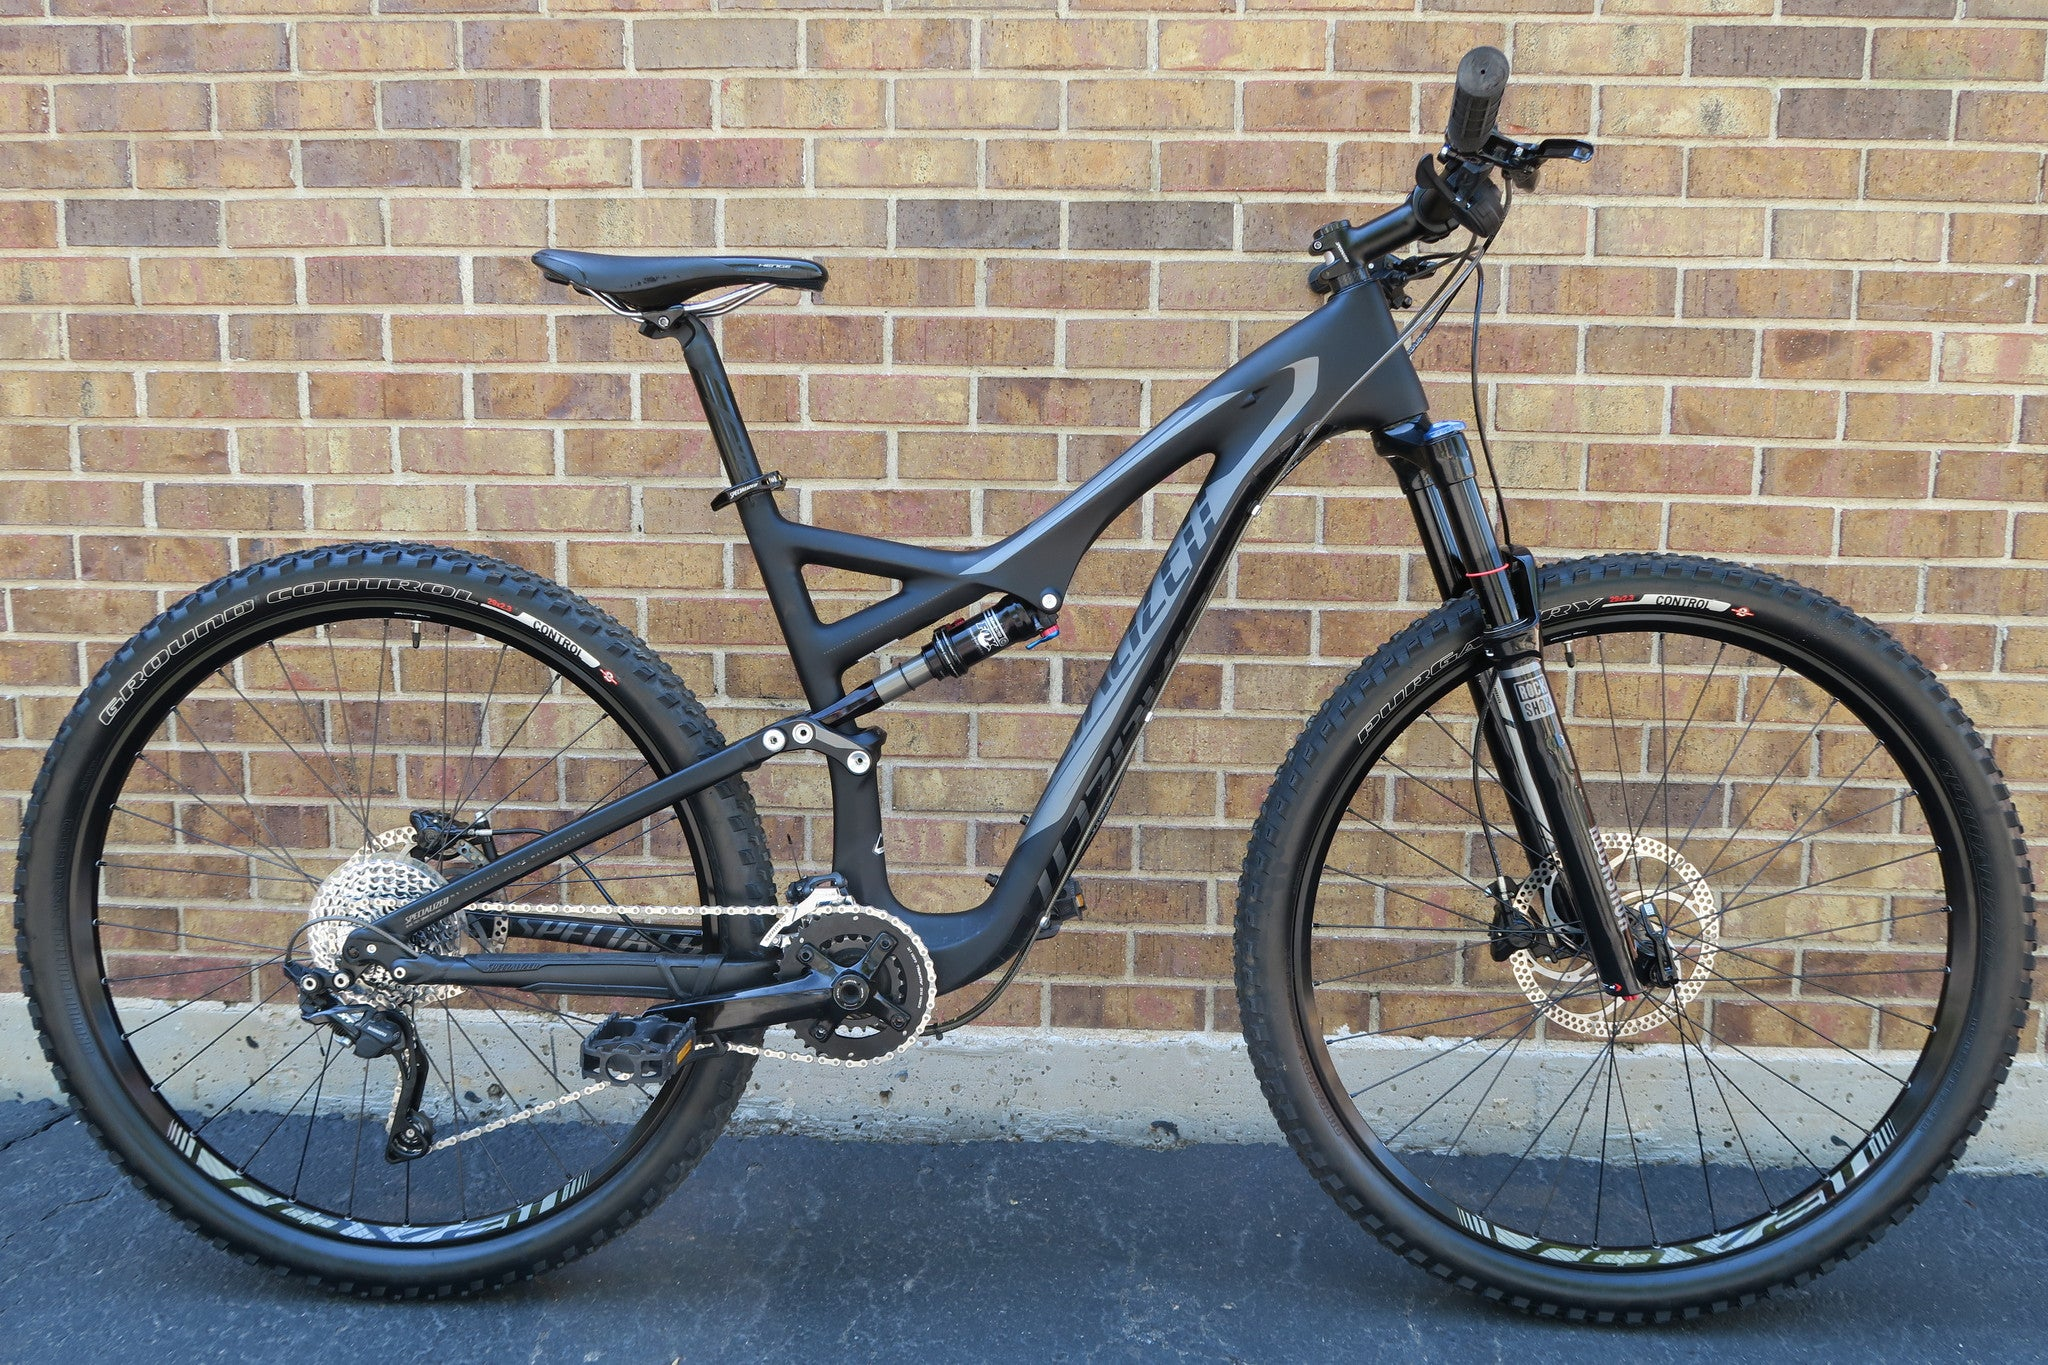 2014 SPECIALIZED STUMPJUMPER COMP CARBON 29